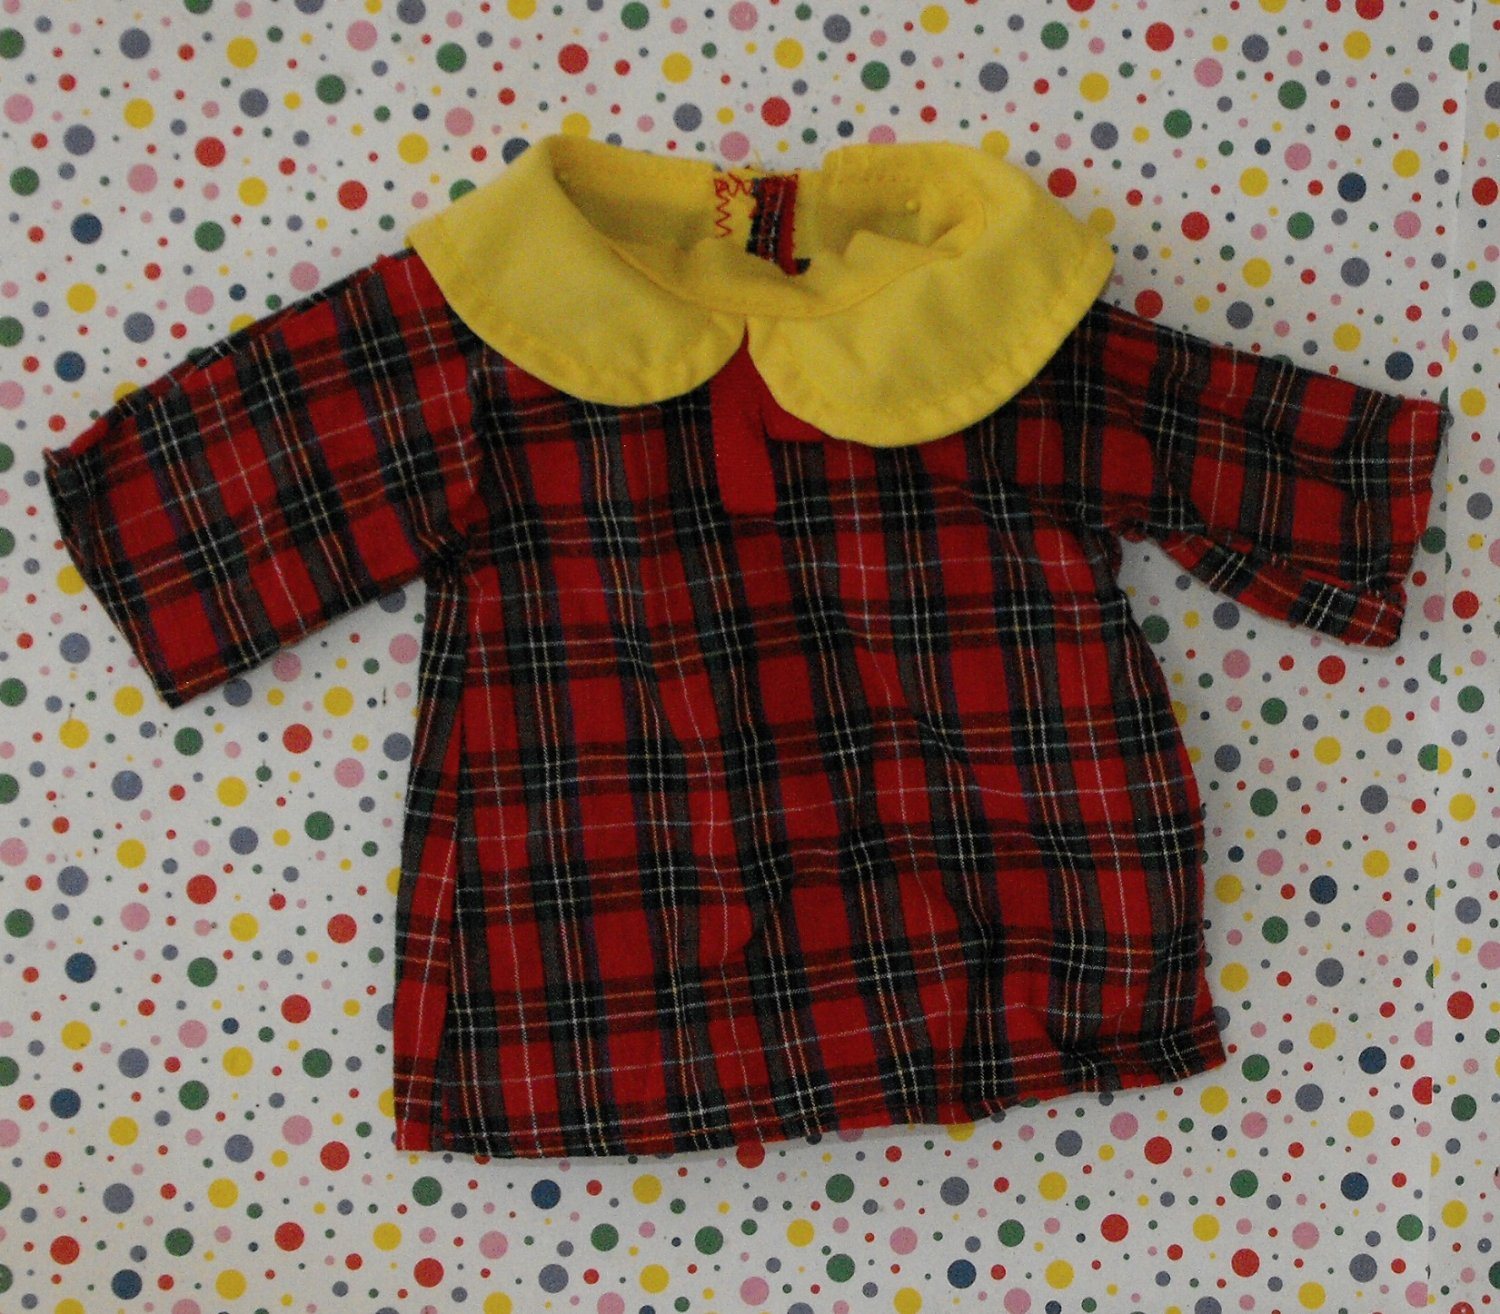 REPLACEMENT DRESS FOR EDEN MADELINE DOLL